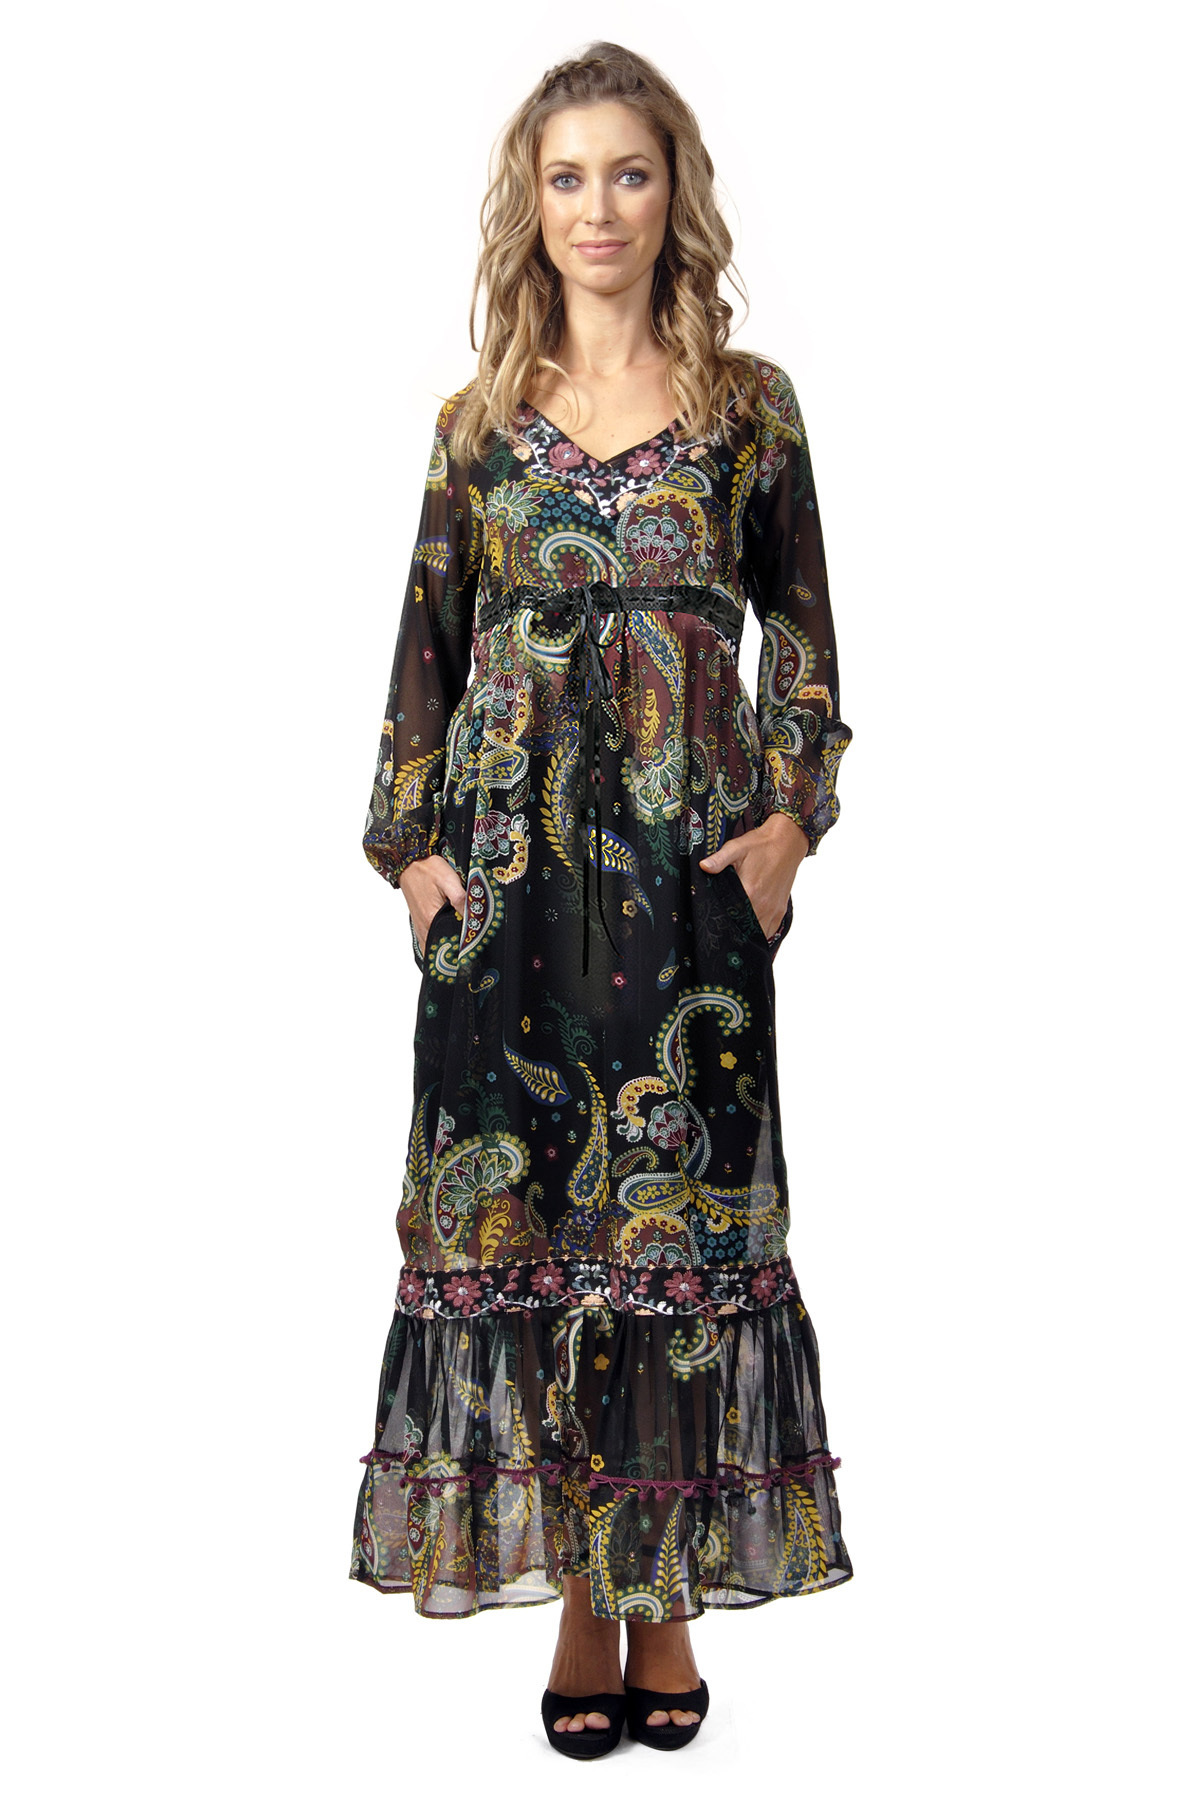 Savage Culture: Lounge In Love Maxi Dress Alicia (2 Left!) SAVAGE_30274